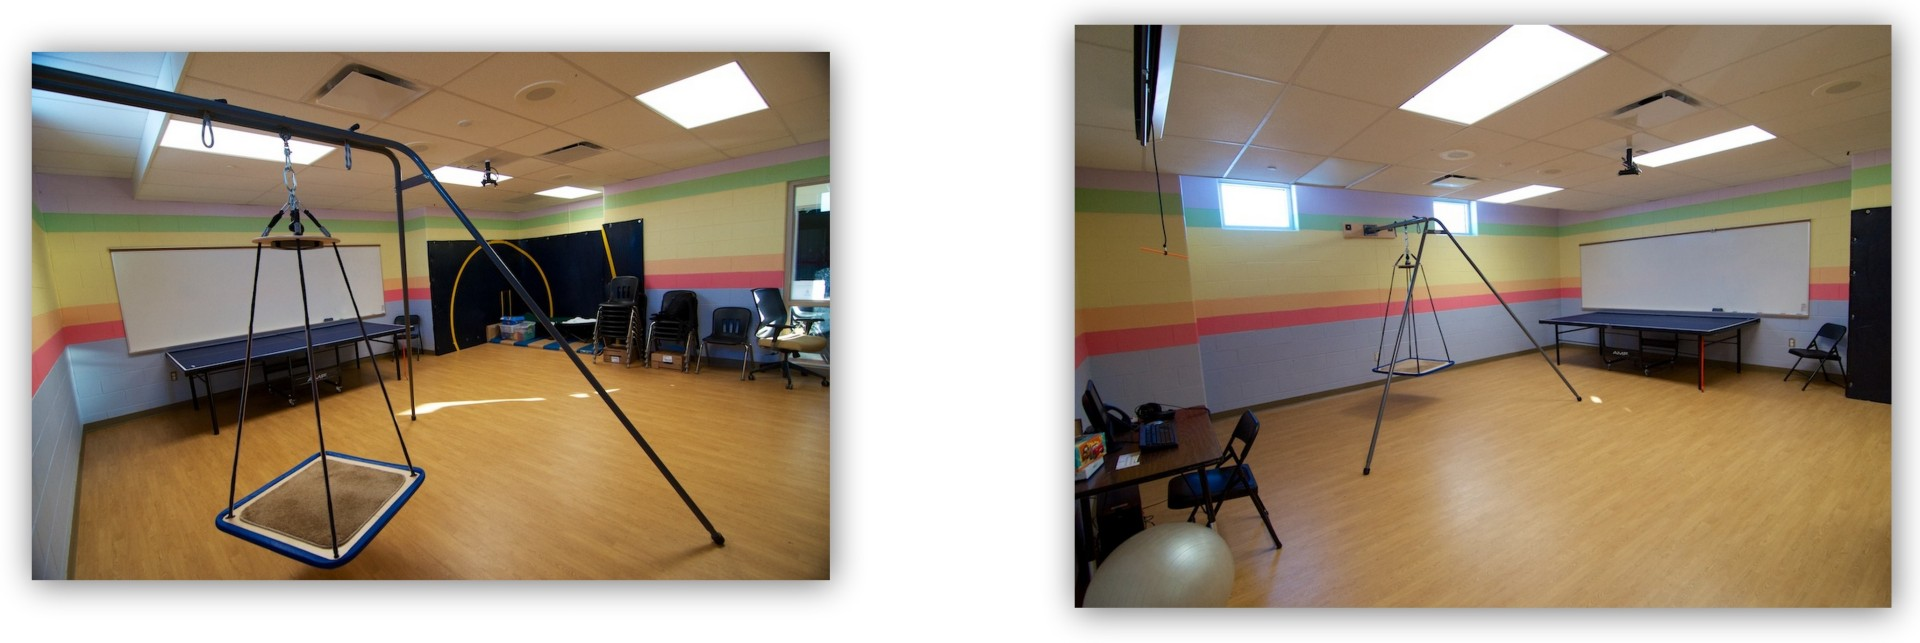 Then new-and-improved sensory/stress-release room at Zemmer Middle School